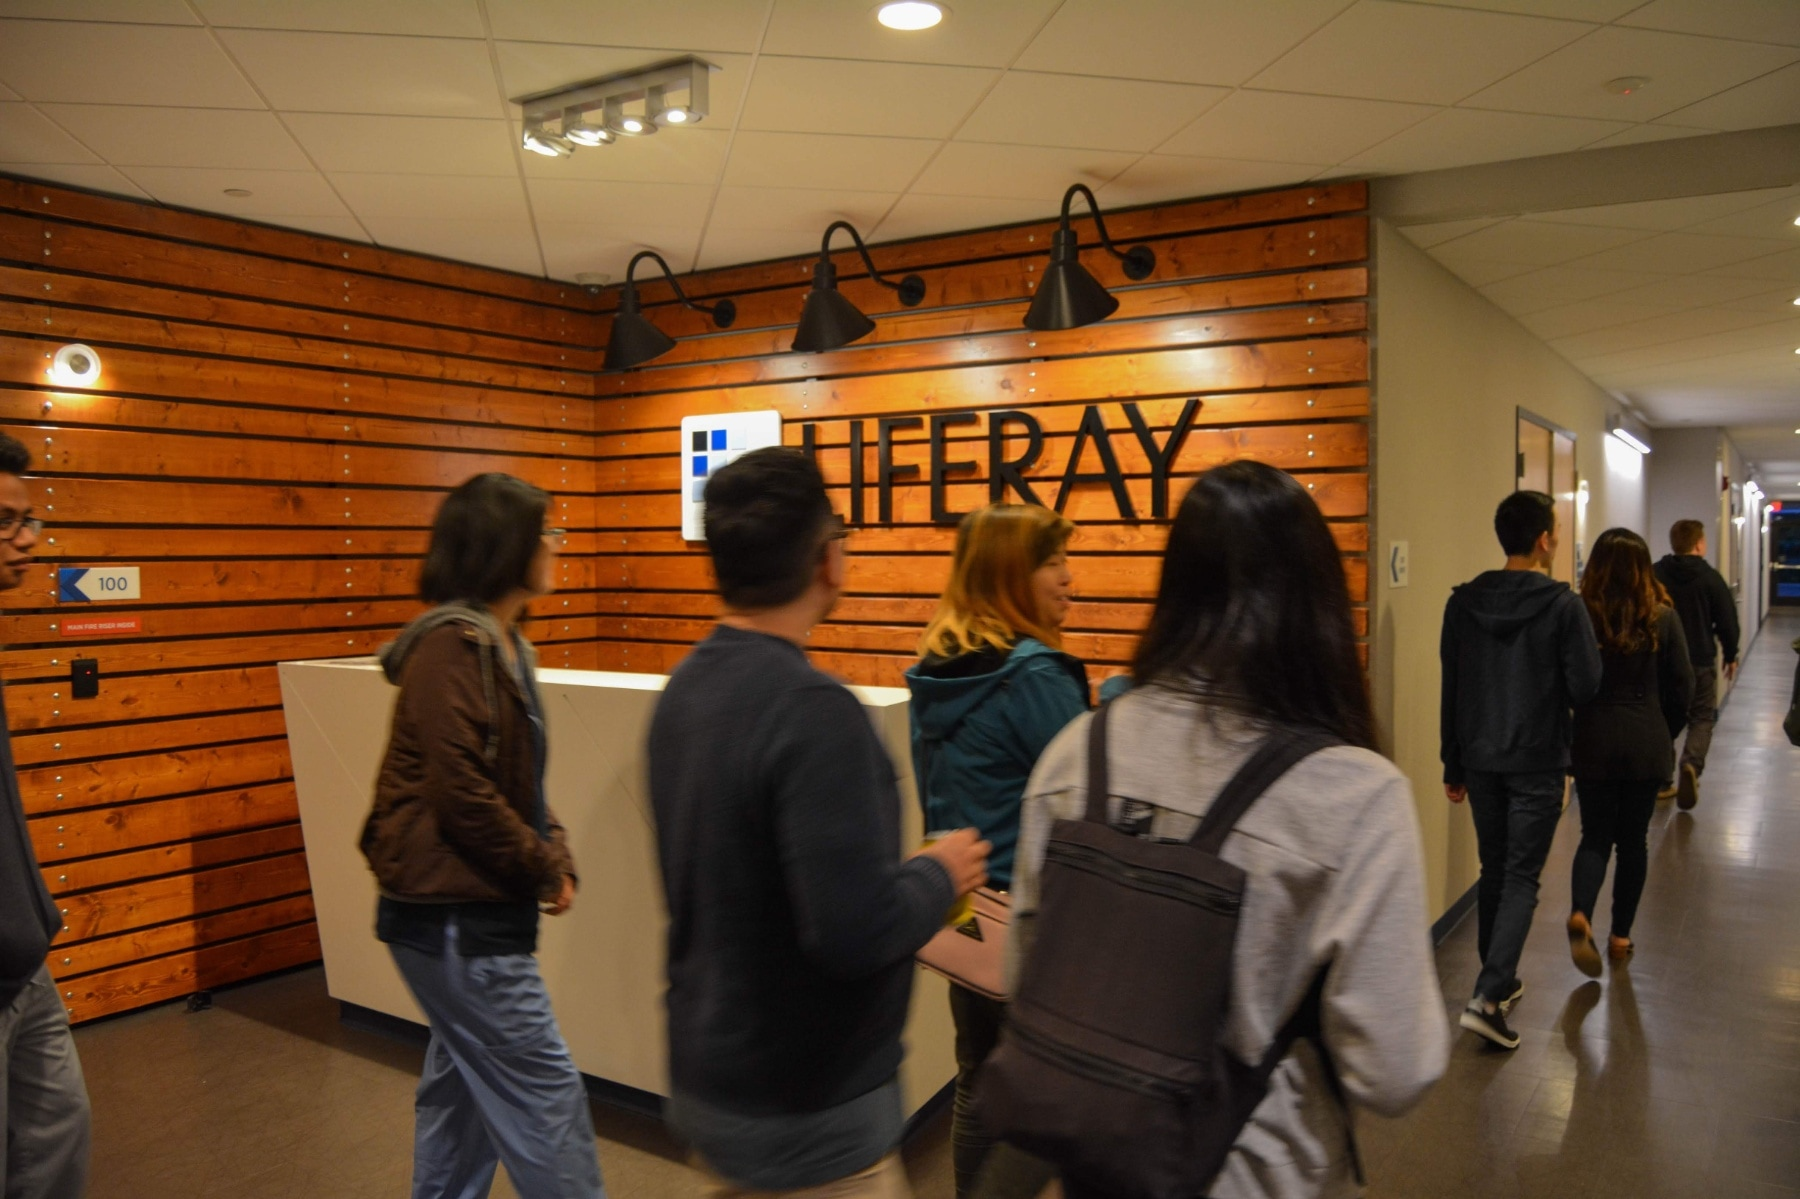 Tour of Liferay